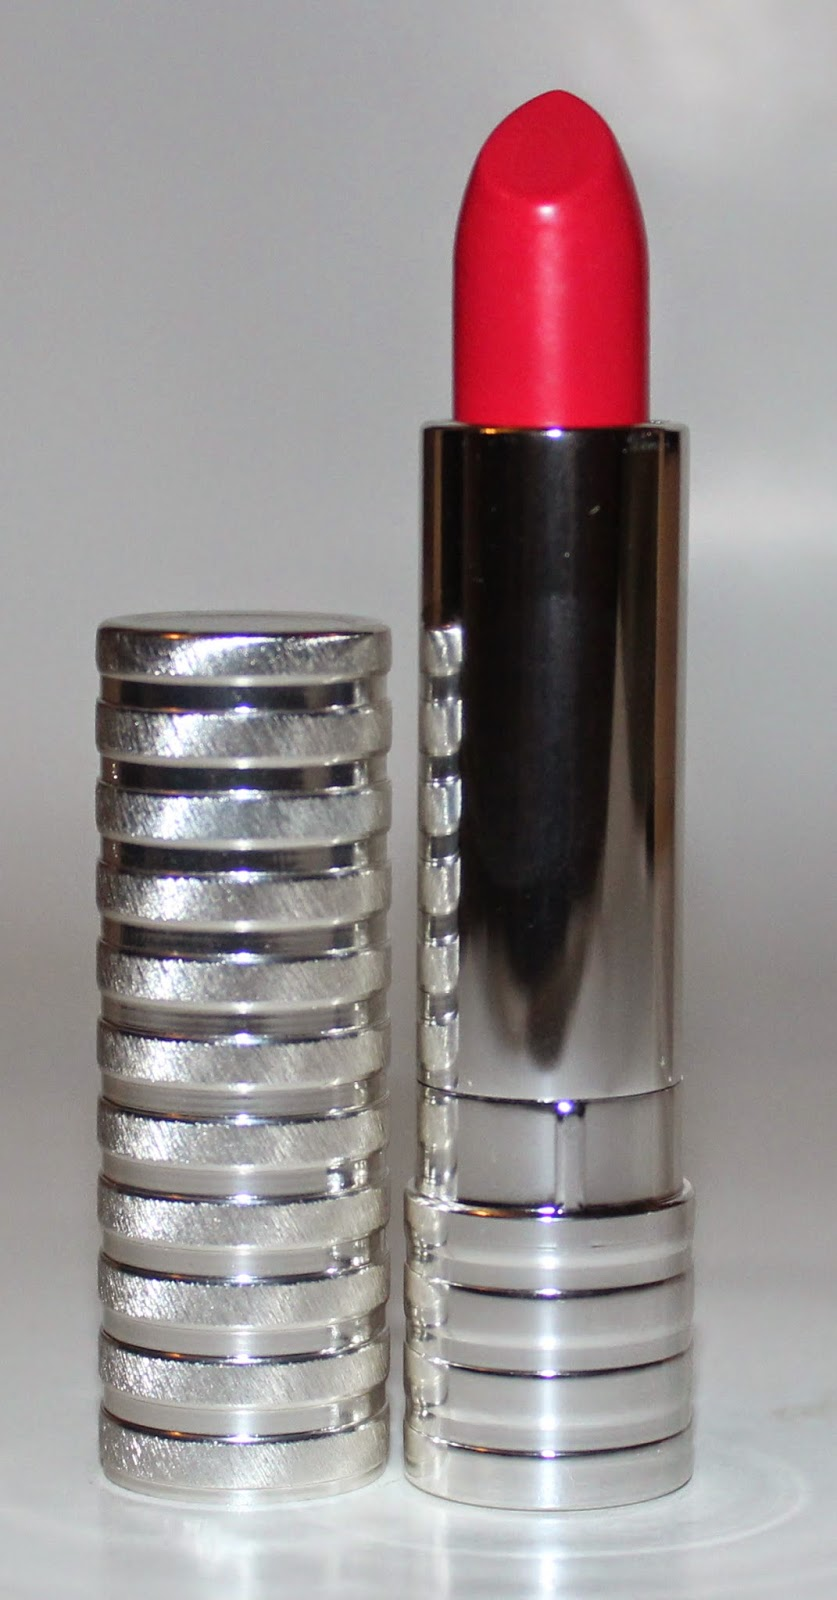 Clinique Long Last Soft Matte Lipstick Peony